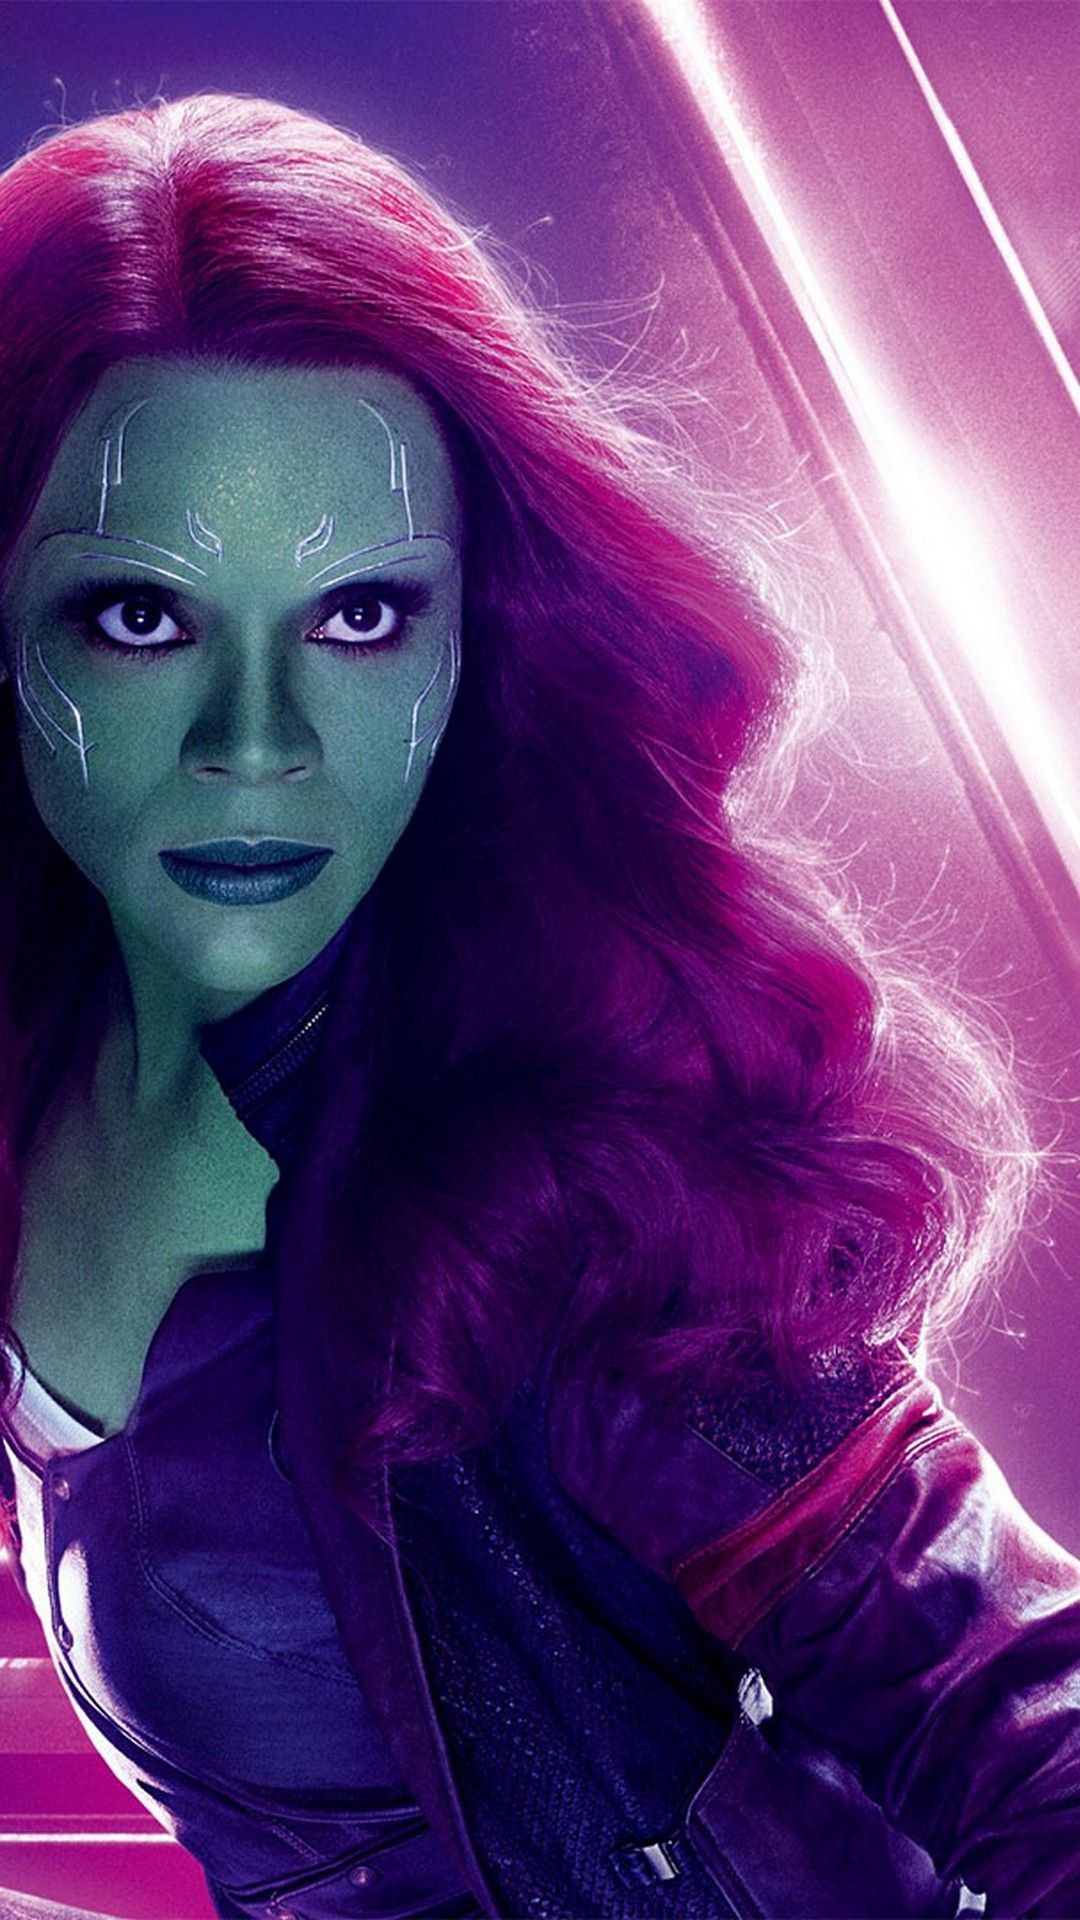 Gamora Avengers Endgame Iphone Wallpaper Best Movie Poster